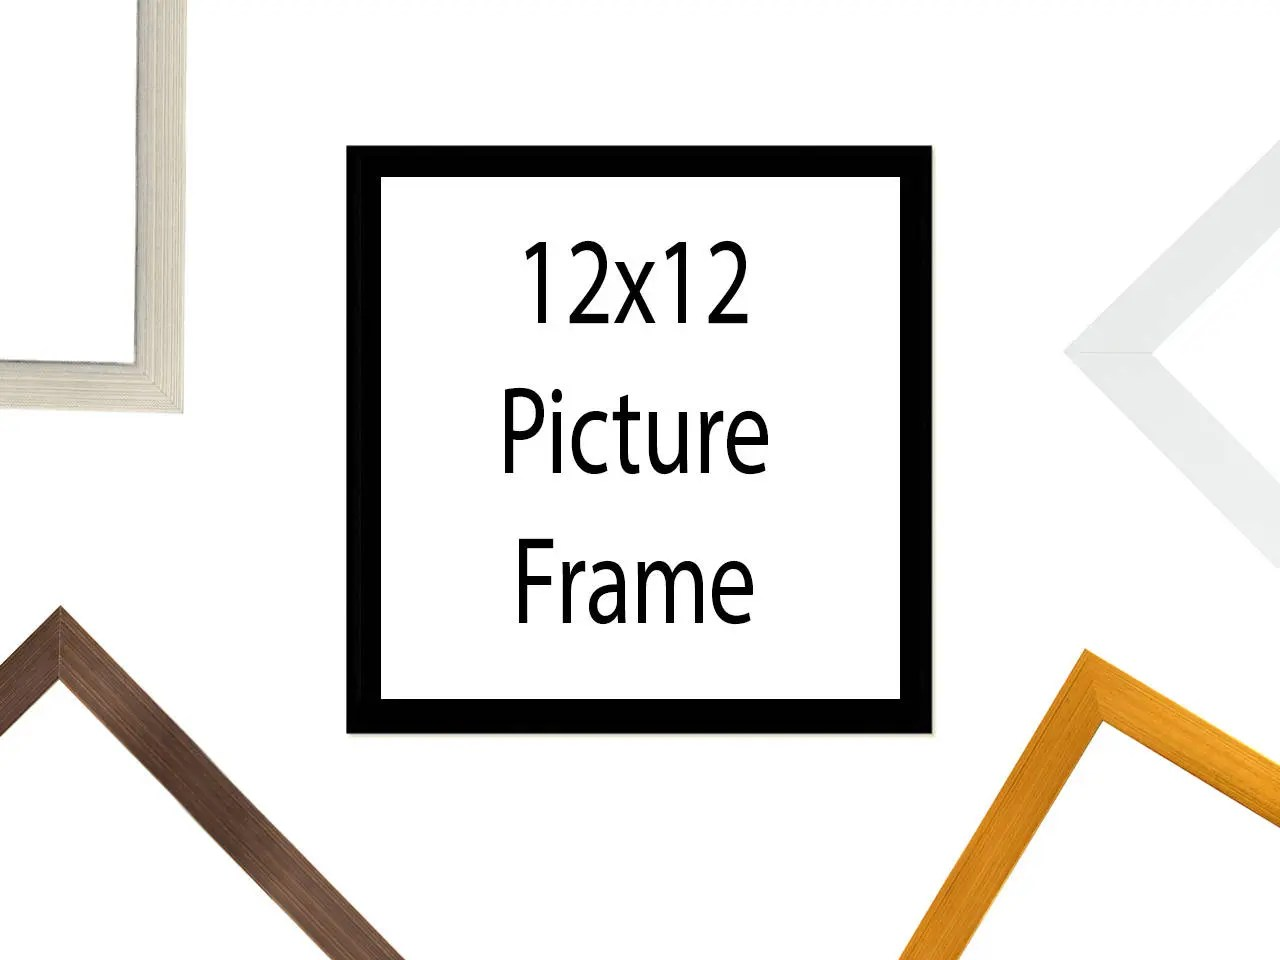 12x12 Poster 12x12 Picture Frame From Matboardshop On Etsy Studio